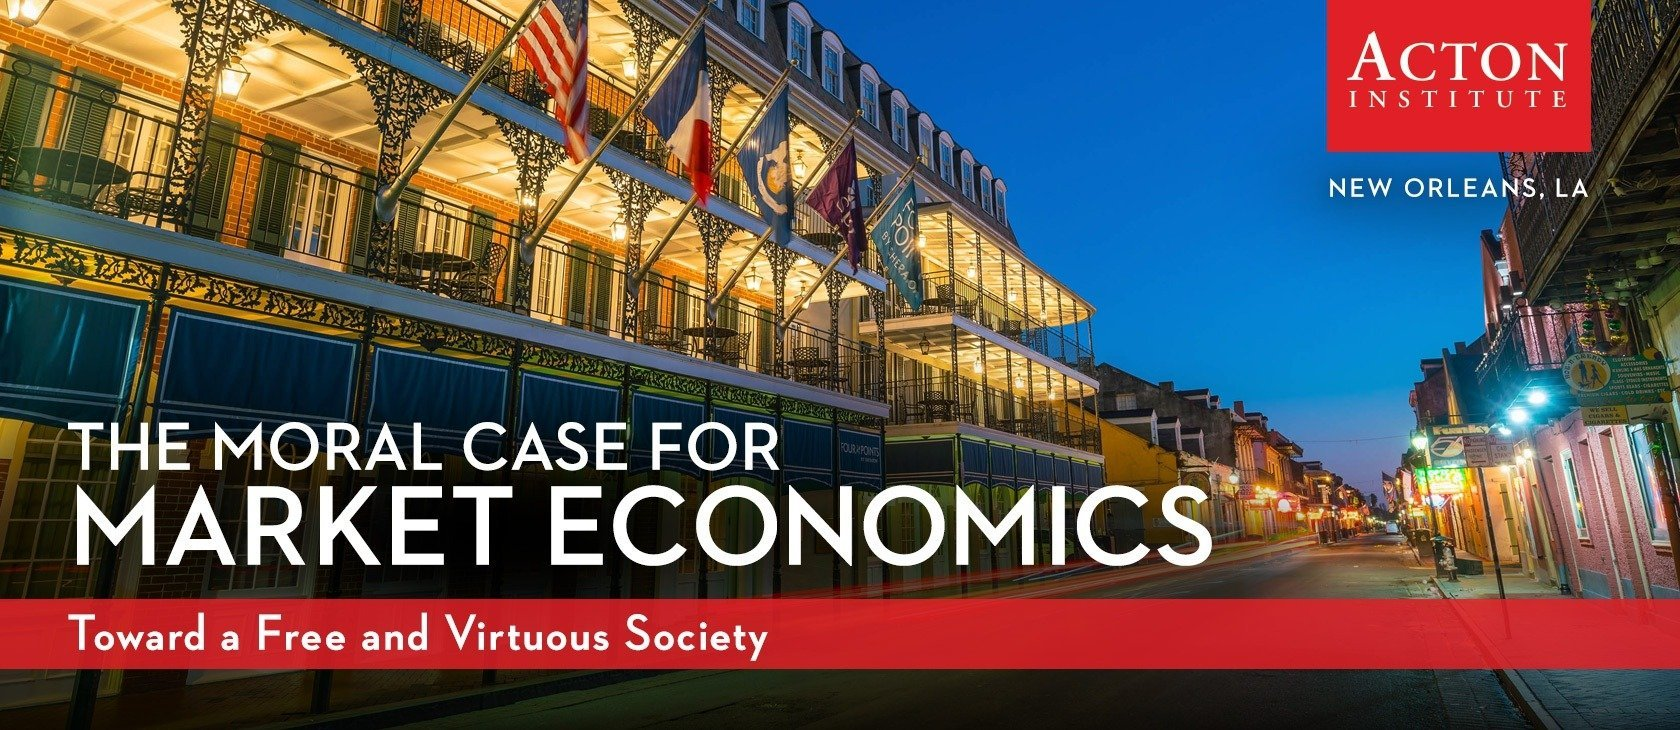 Banner for the Acton conference on morality and markets